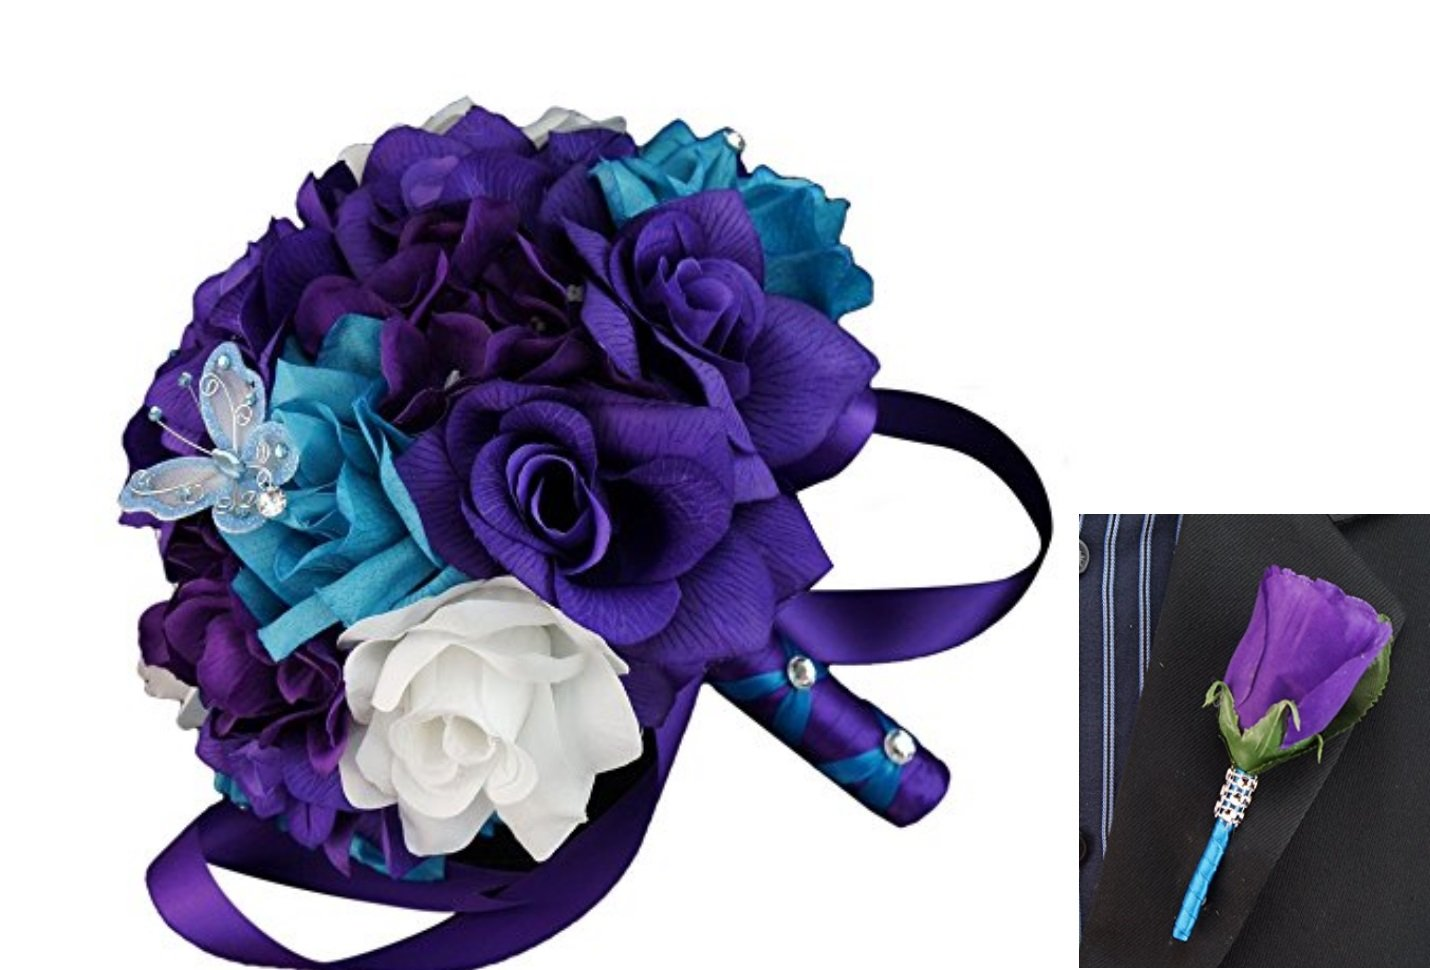 2pc-Set-Bouquet-and-Rose-Boutonniere-Turquoise-White-Purple-with-Silver-Accents